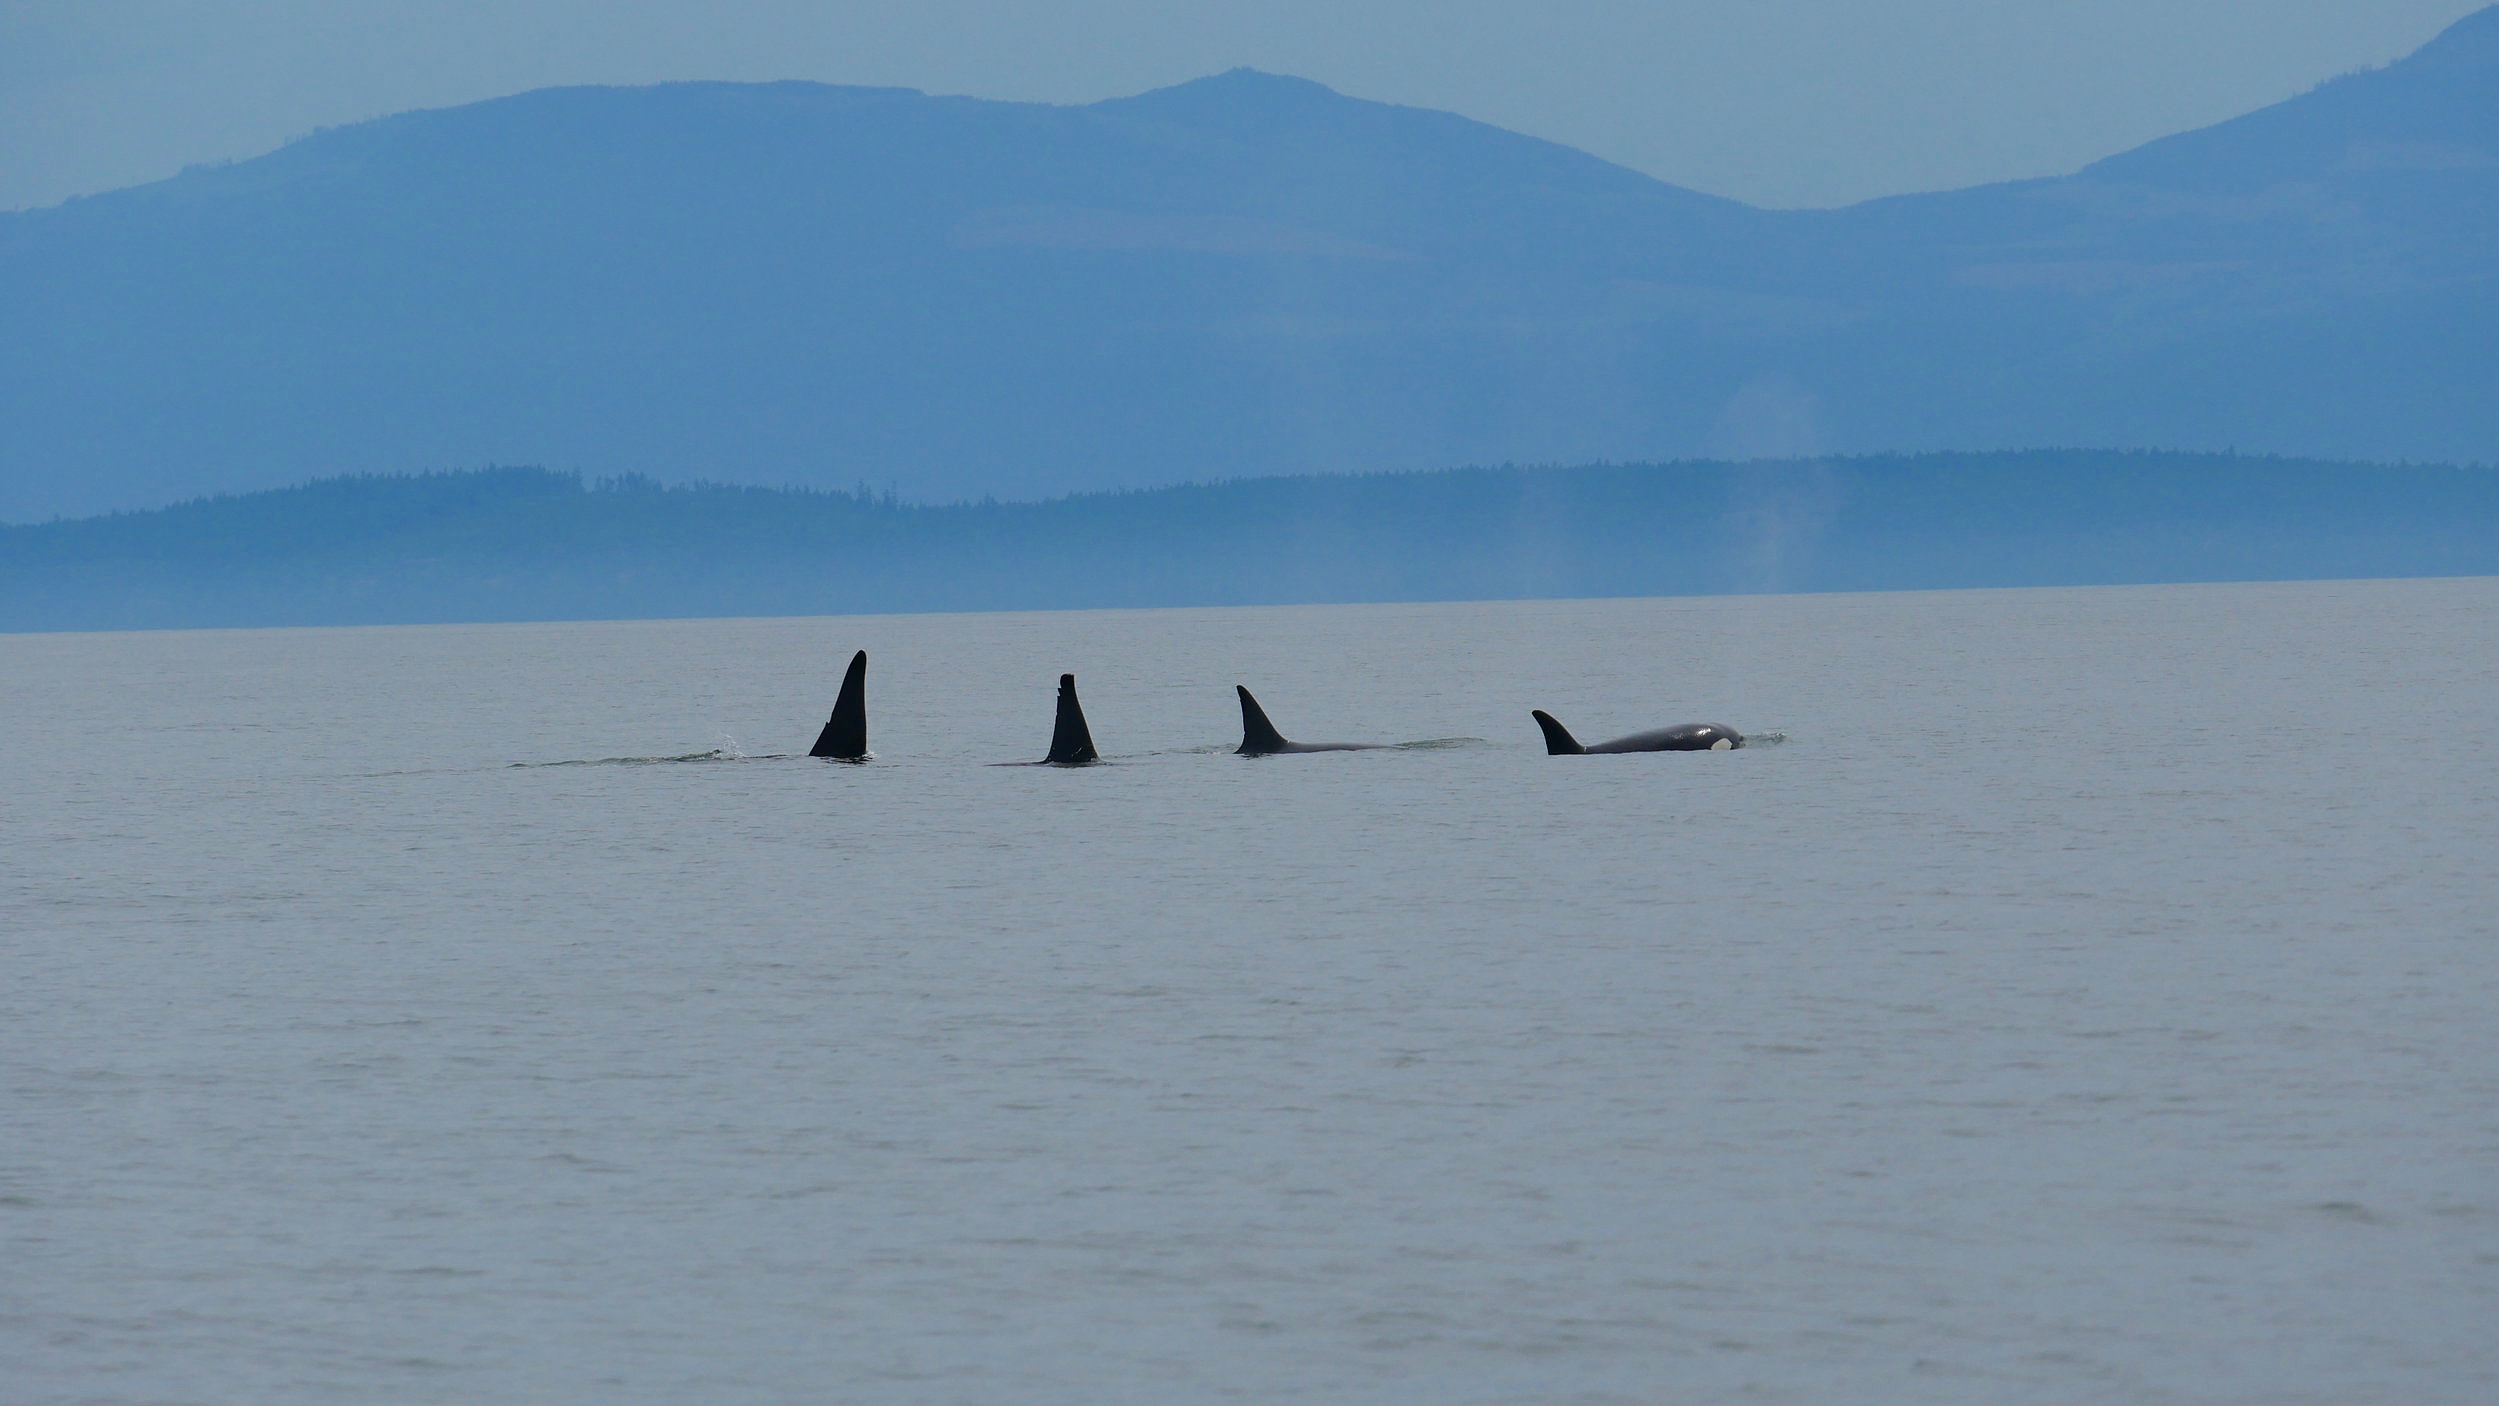 Left to right: Camillo (T46E), T46D, Wake (T46), T46. Photo by Rebeka Pirker (3:30).